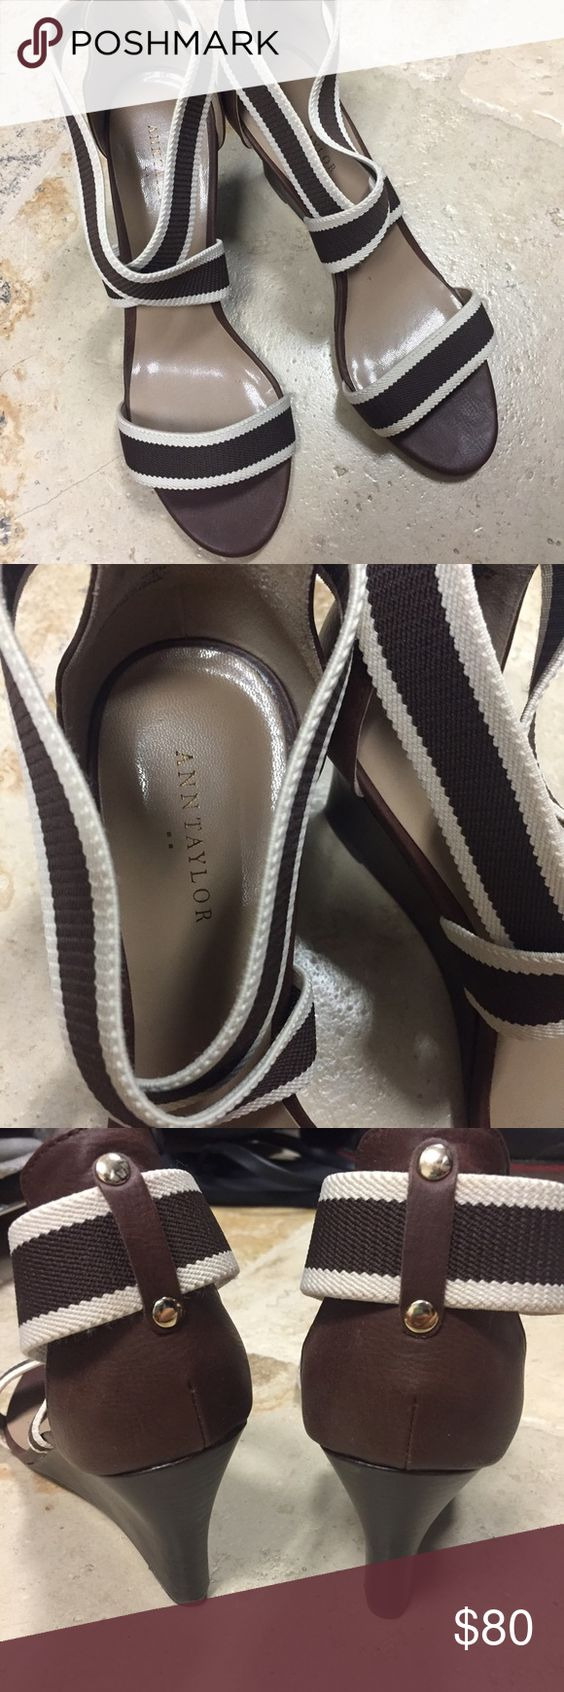 Cream and Brown Strap wedge Ann Taylor gorgeous brown wedges. Perfect for summer! Ann Taylor Shoes Wedges